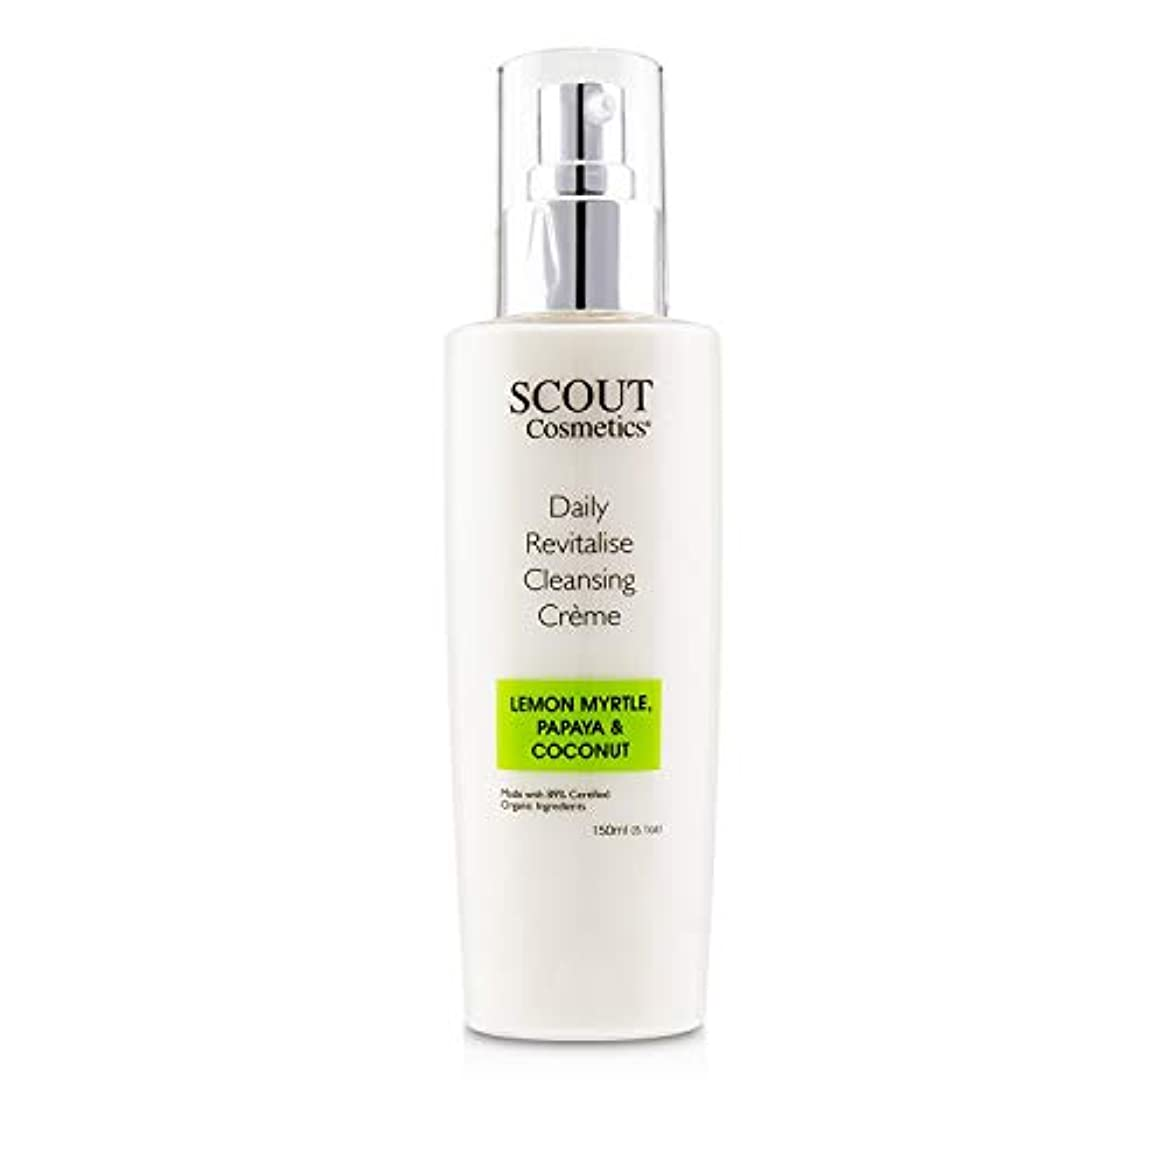 SCOUT Cosmetics Daily Revitalise Cleansing Creme with Lemon Myrtle, Papaya & Coconut 150ml/5.1oz並行輸入品